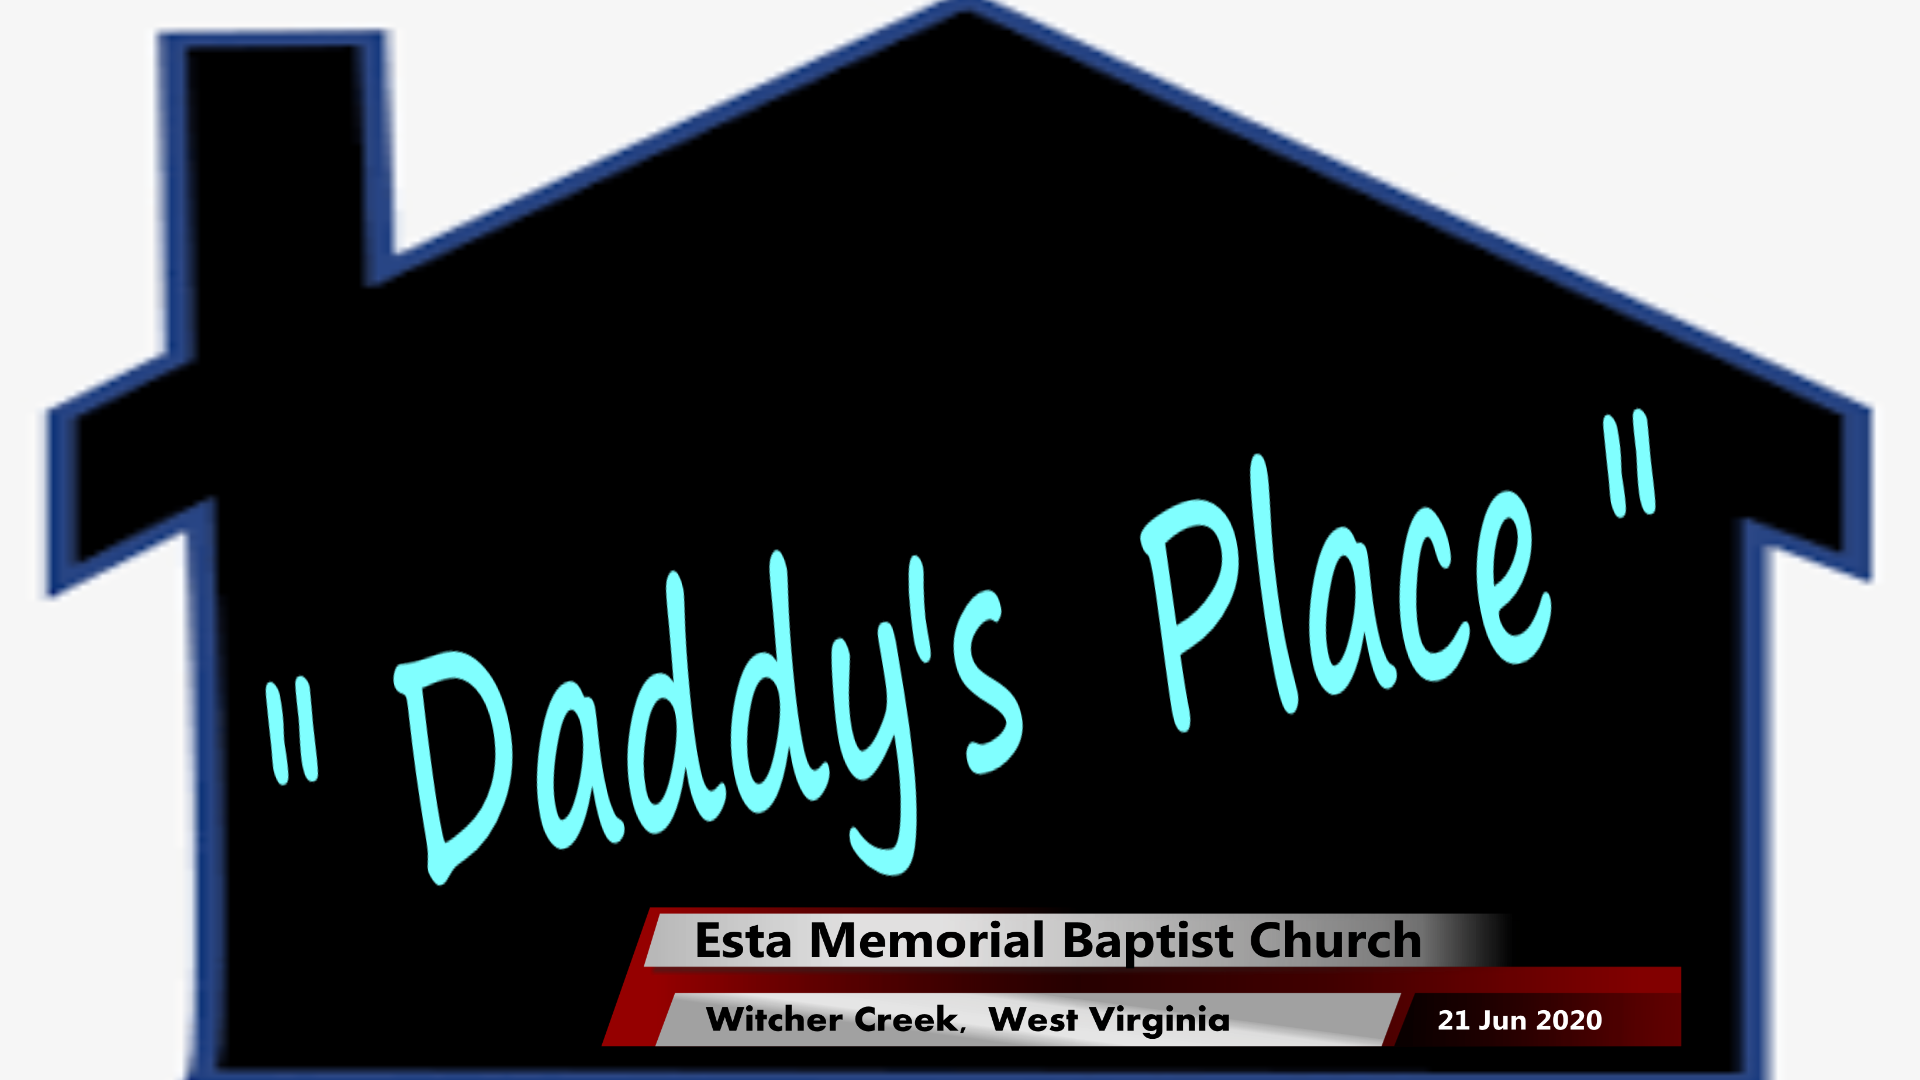 DADDY'S PLACE